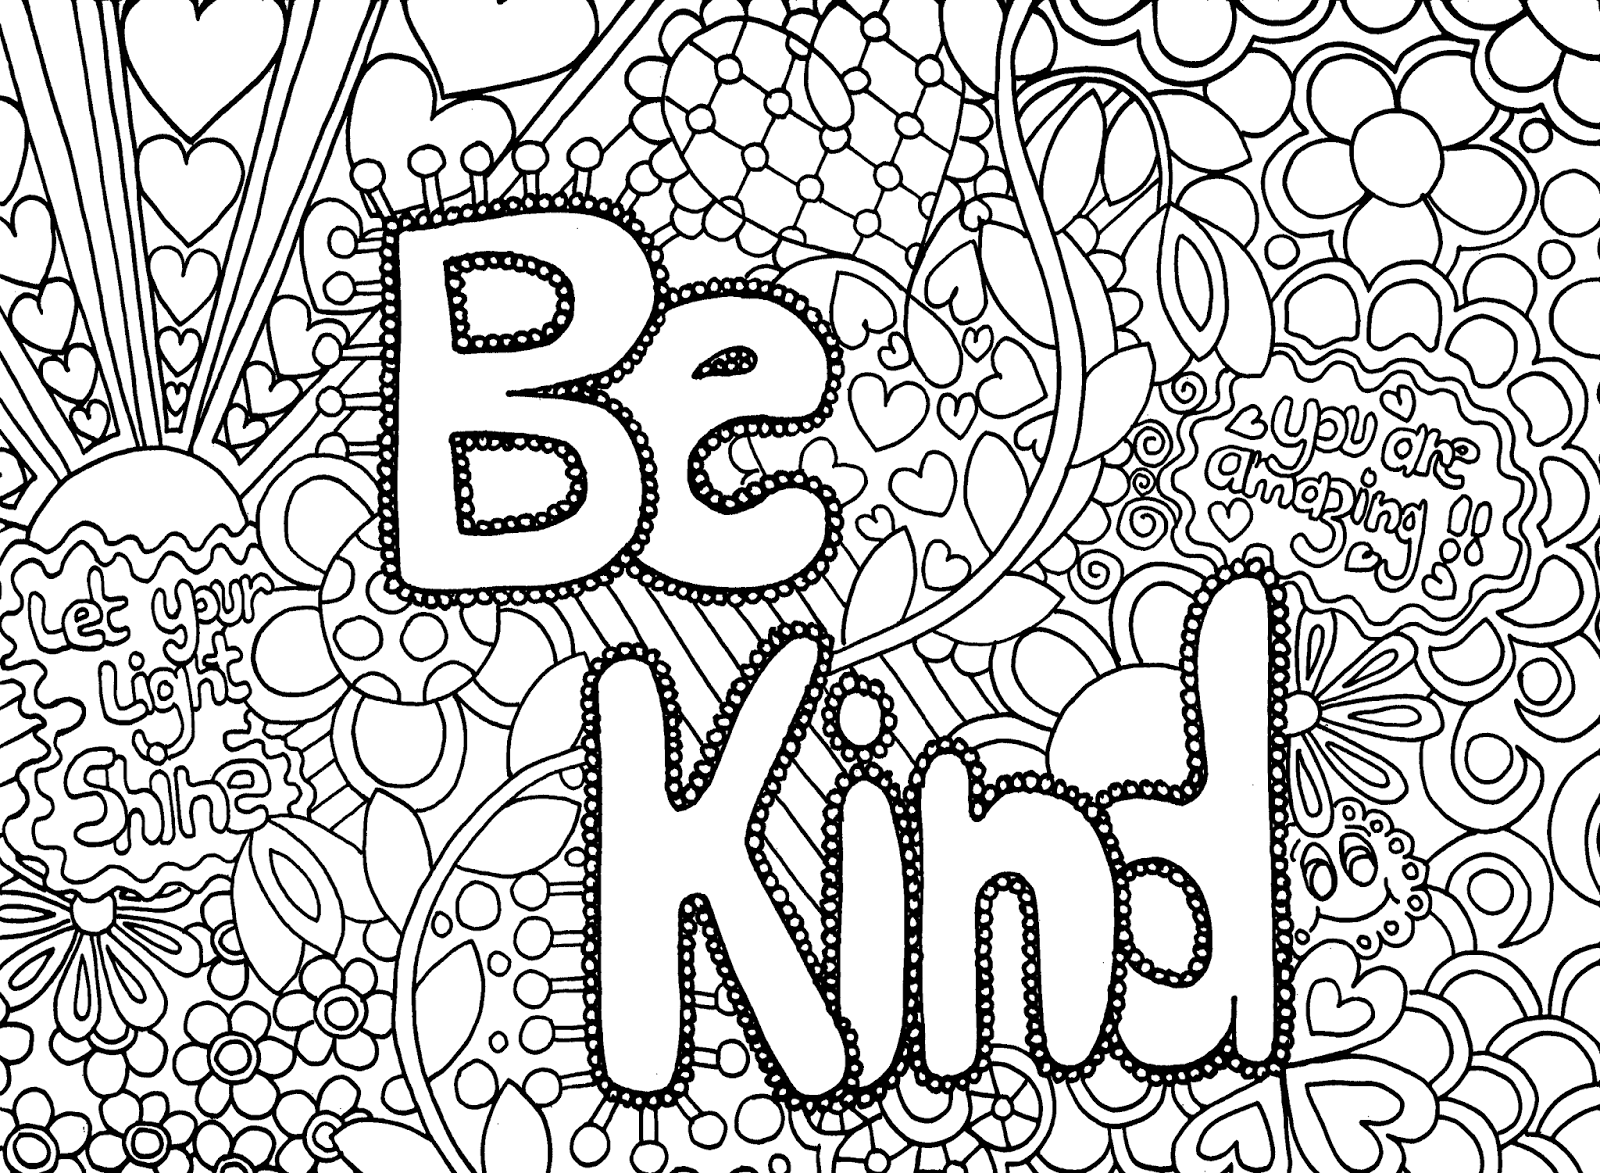 The coloring book project 2nd edition - Coloring Pages For Teenagers